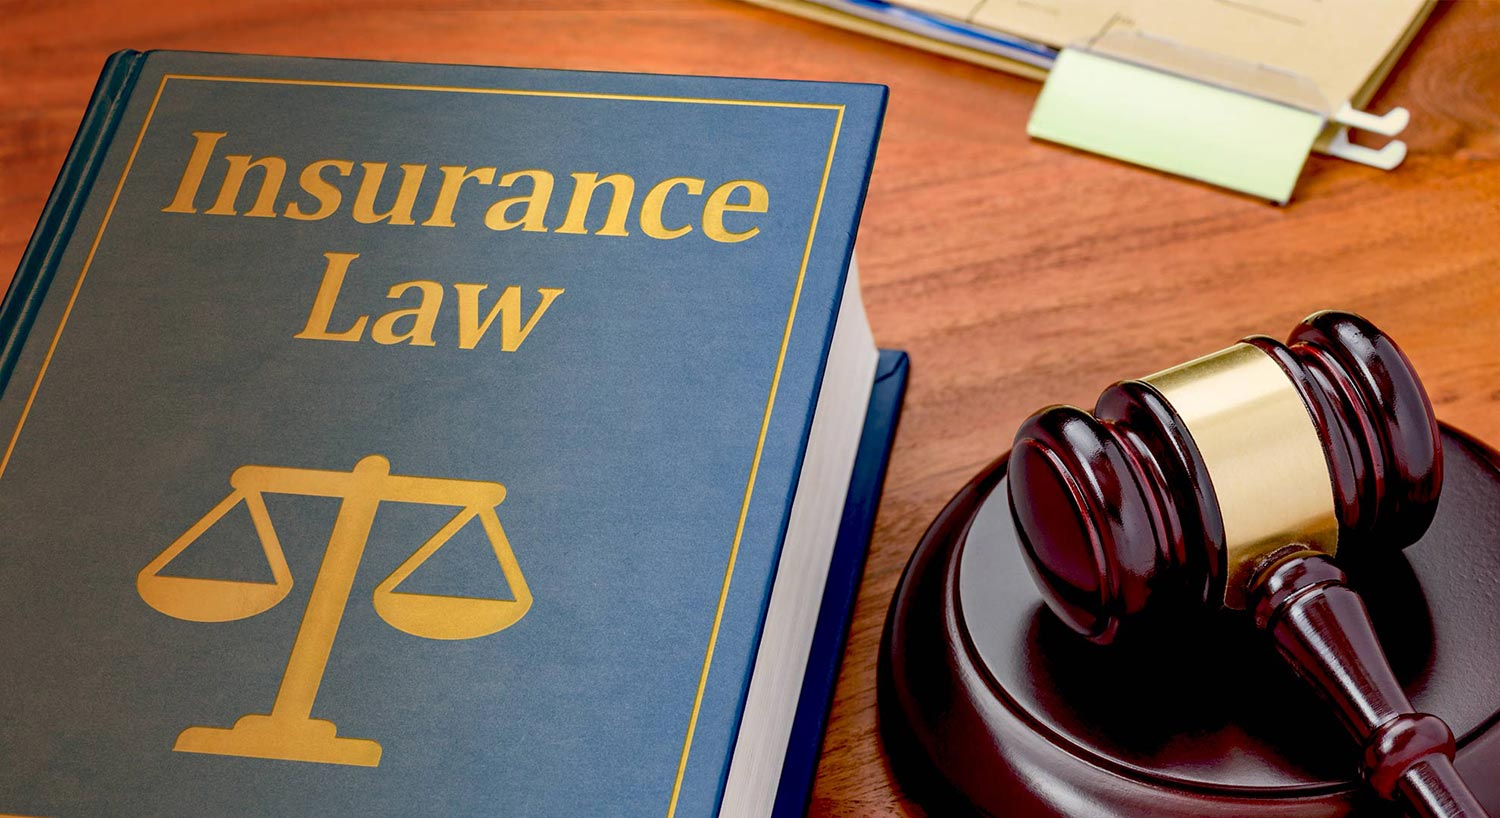 Workers Compensation Insurance Laws And Penalties